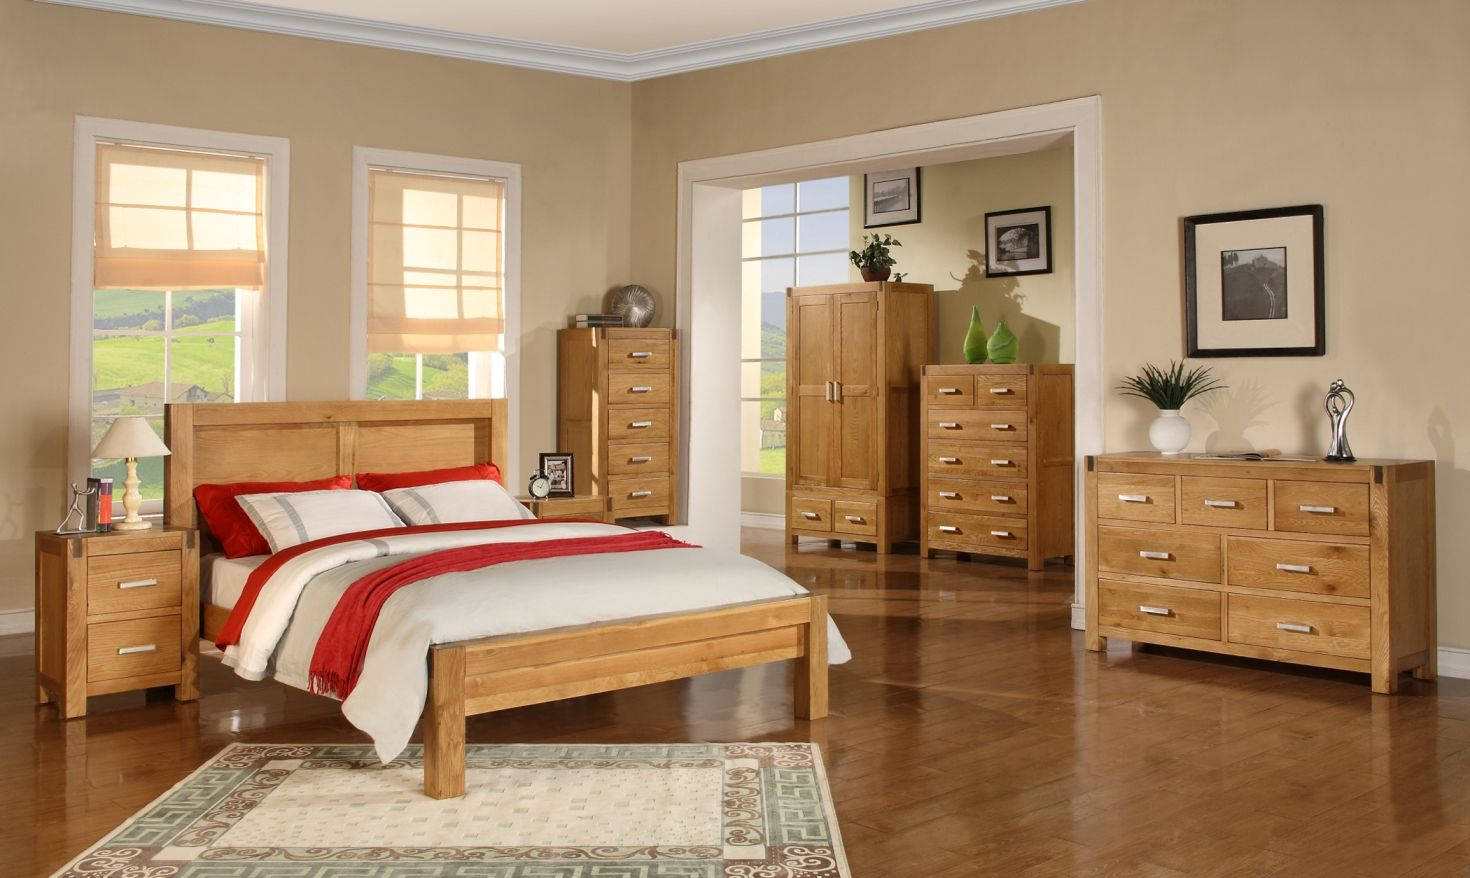 Solid Wood Classic Low Beds Natural Bed Company Wooden Bed Bed Headboard Wooden Wooden Bed Design